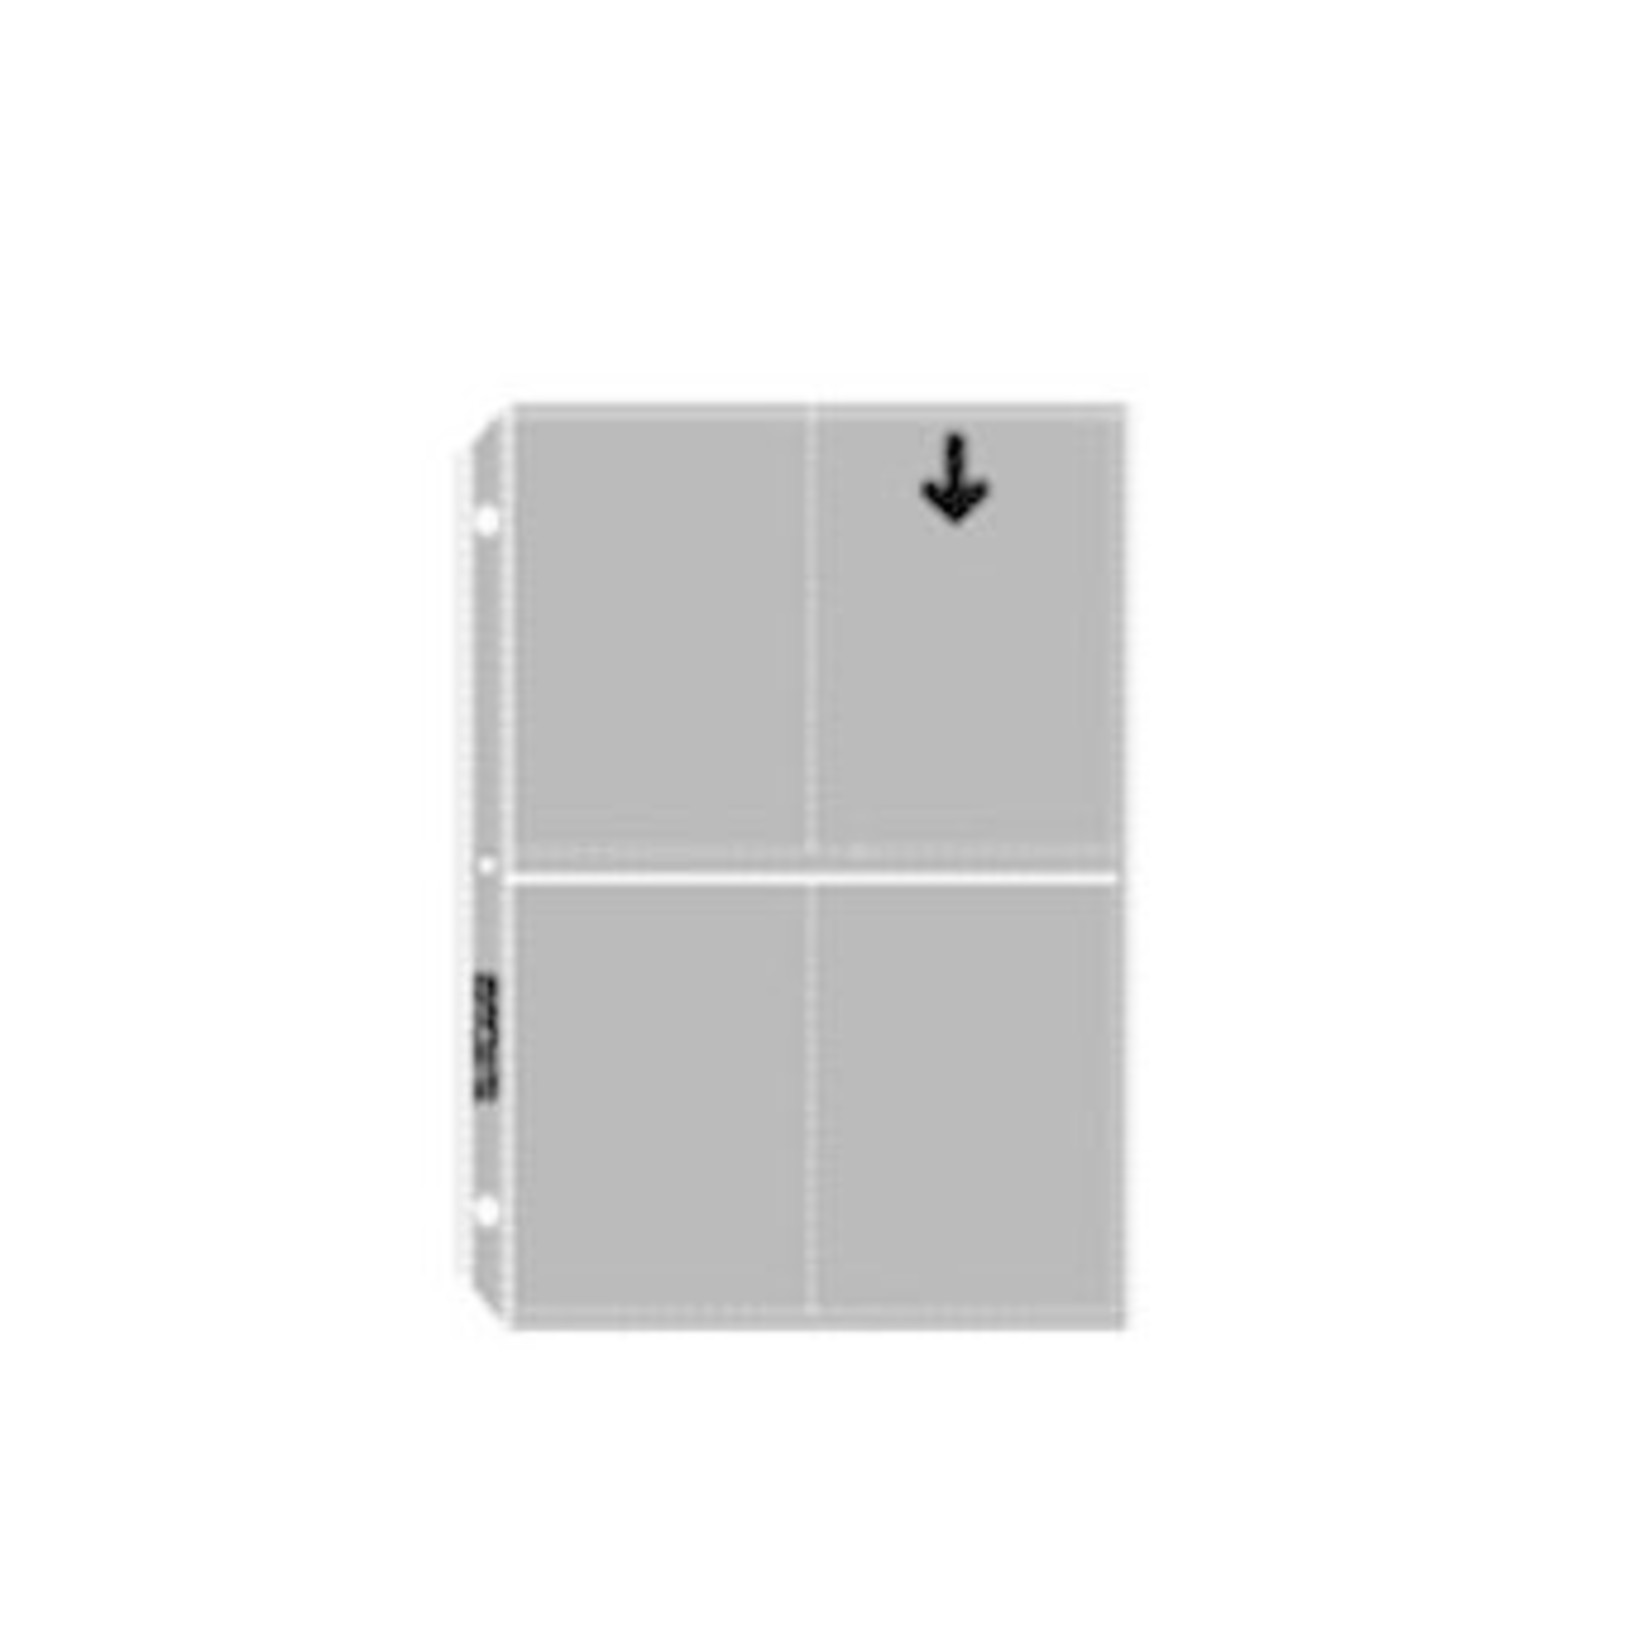 Vue-All 3.5 x 5 Archival Photo Sleeves (25 PK)